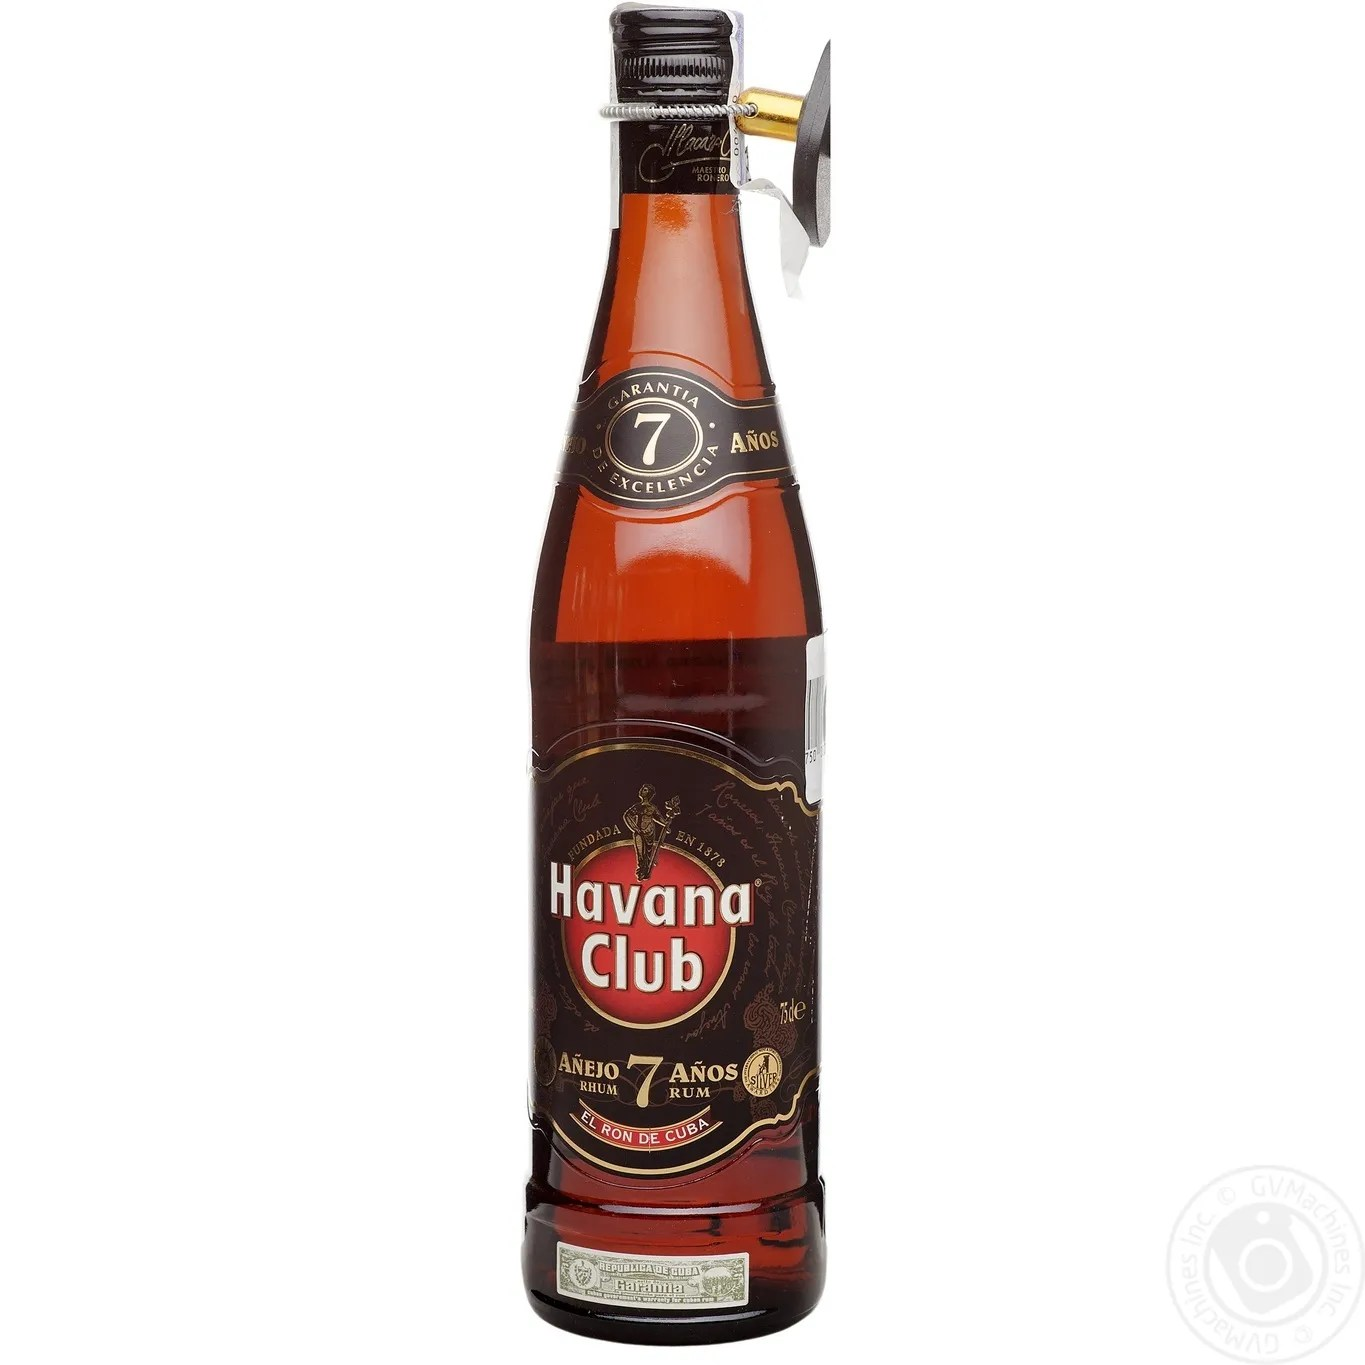 Rum Glas Rum Havana Club 40 7yrs 750ml Glass Bottle Cuba Drinks